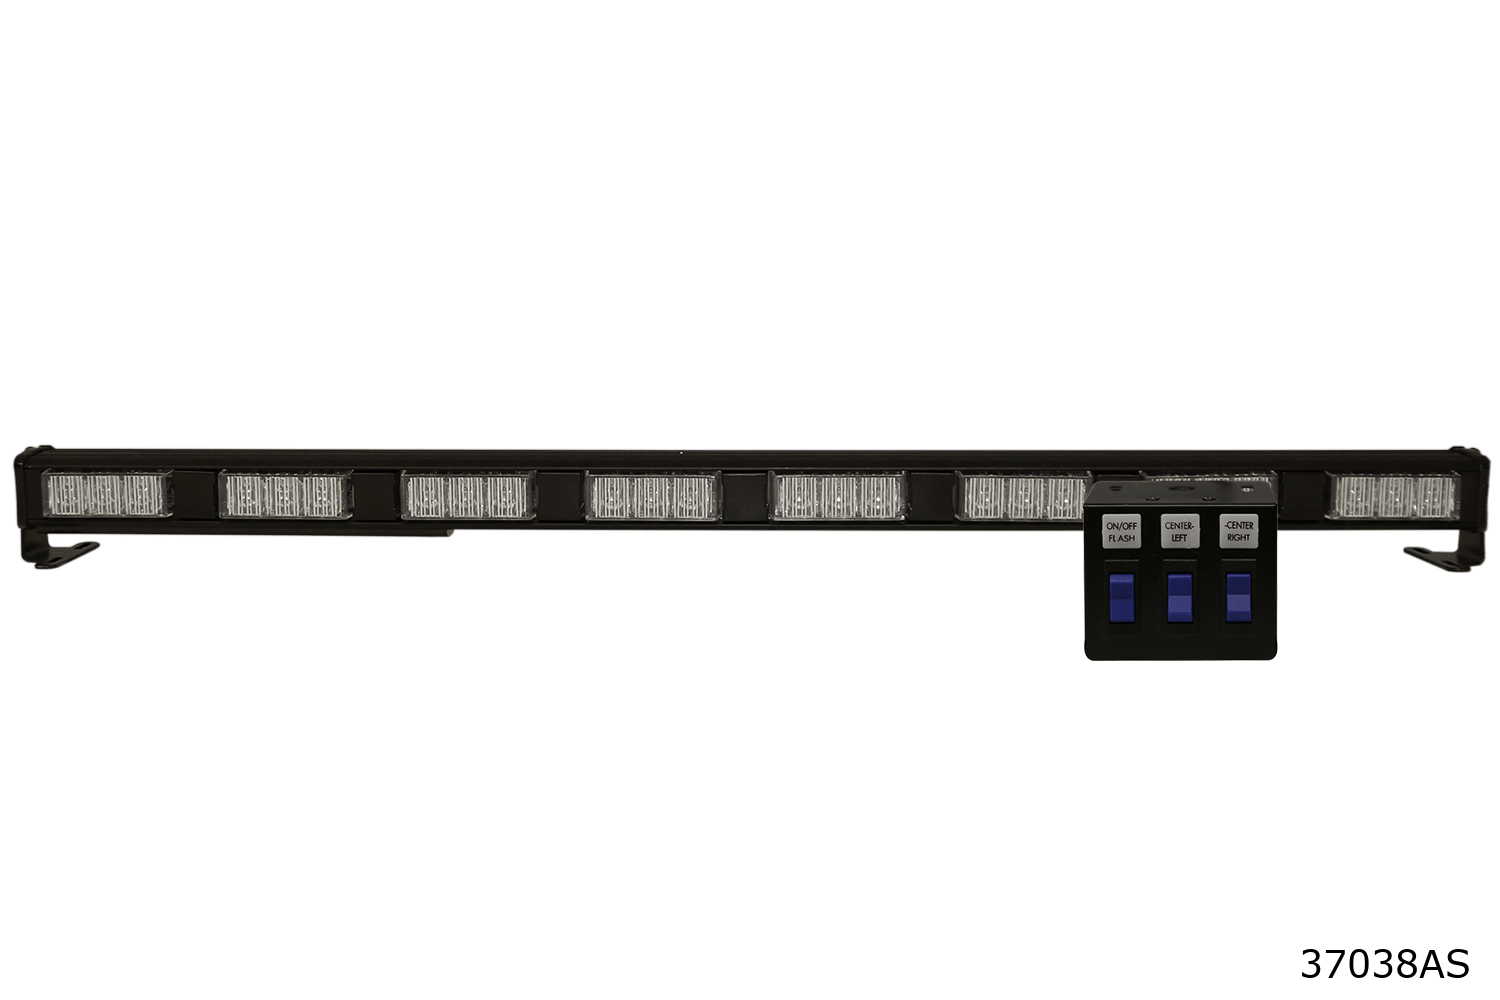 SAE Class I LED. High output directional warning with the added benefits of low amp draw, maintenance free, and long-life LED light source. Features 32 flash patterns selectable via in-cab rocker switch panel.